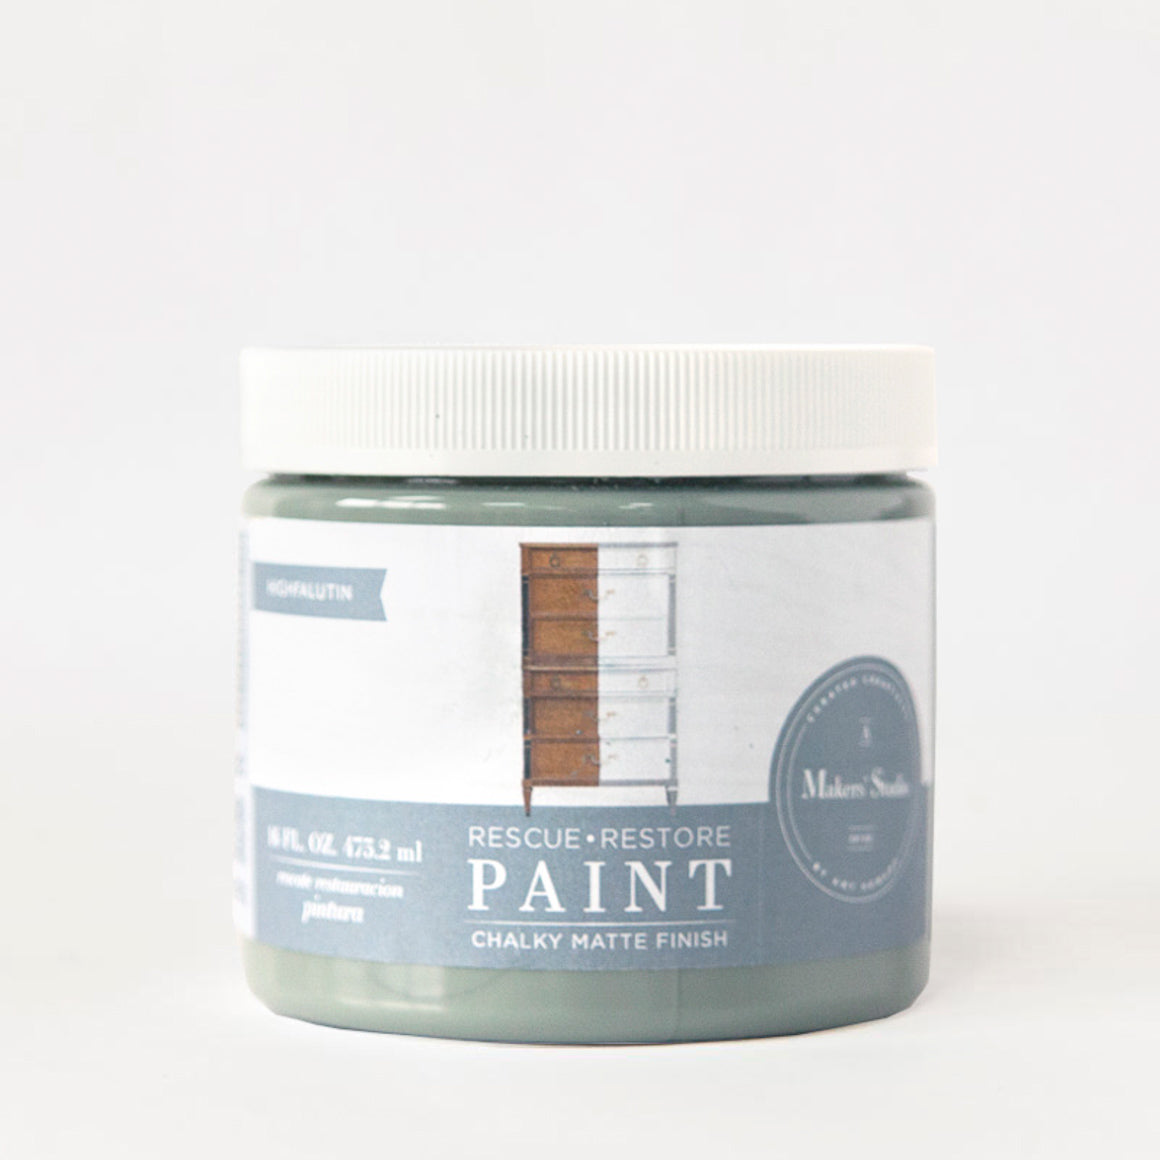 Highfalutin - Rescue Restore Paint